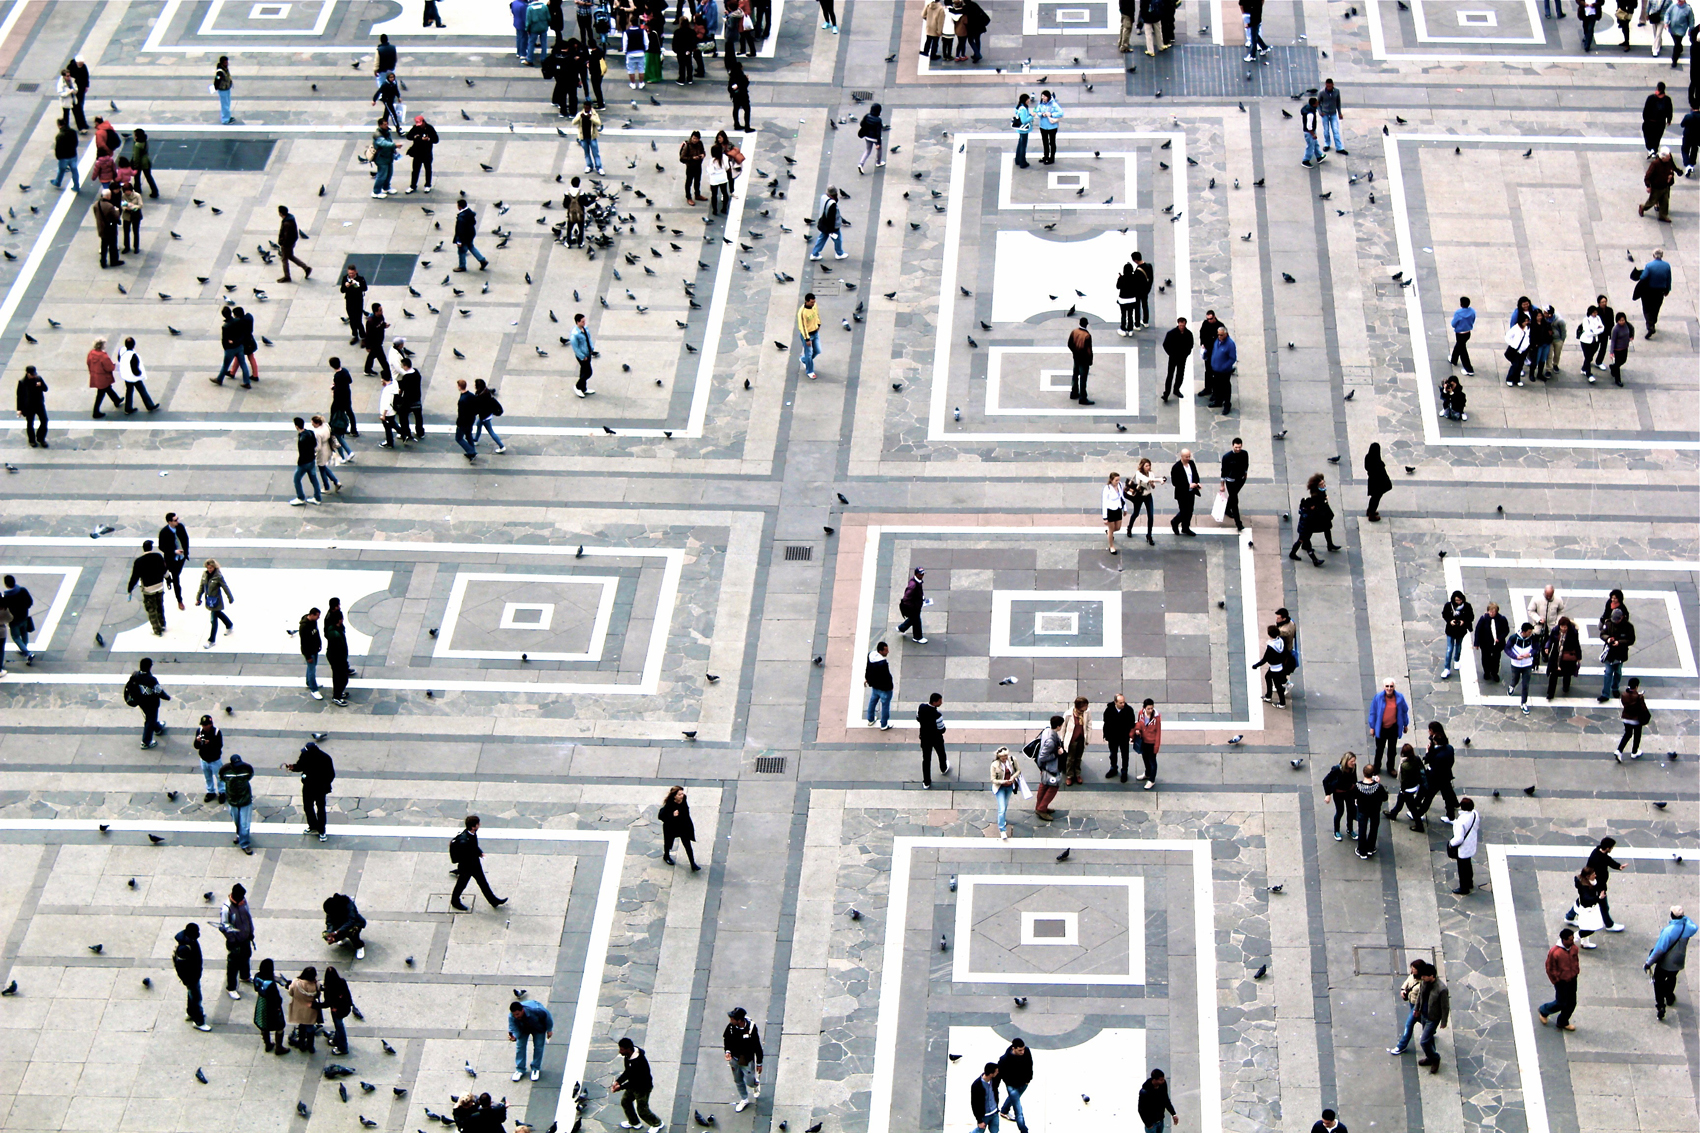 bird's eye view of Duomo square in Milan